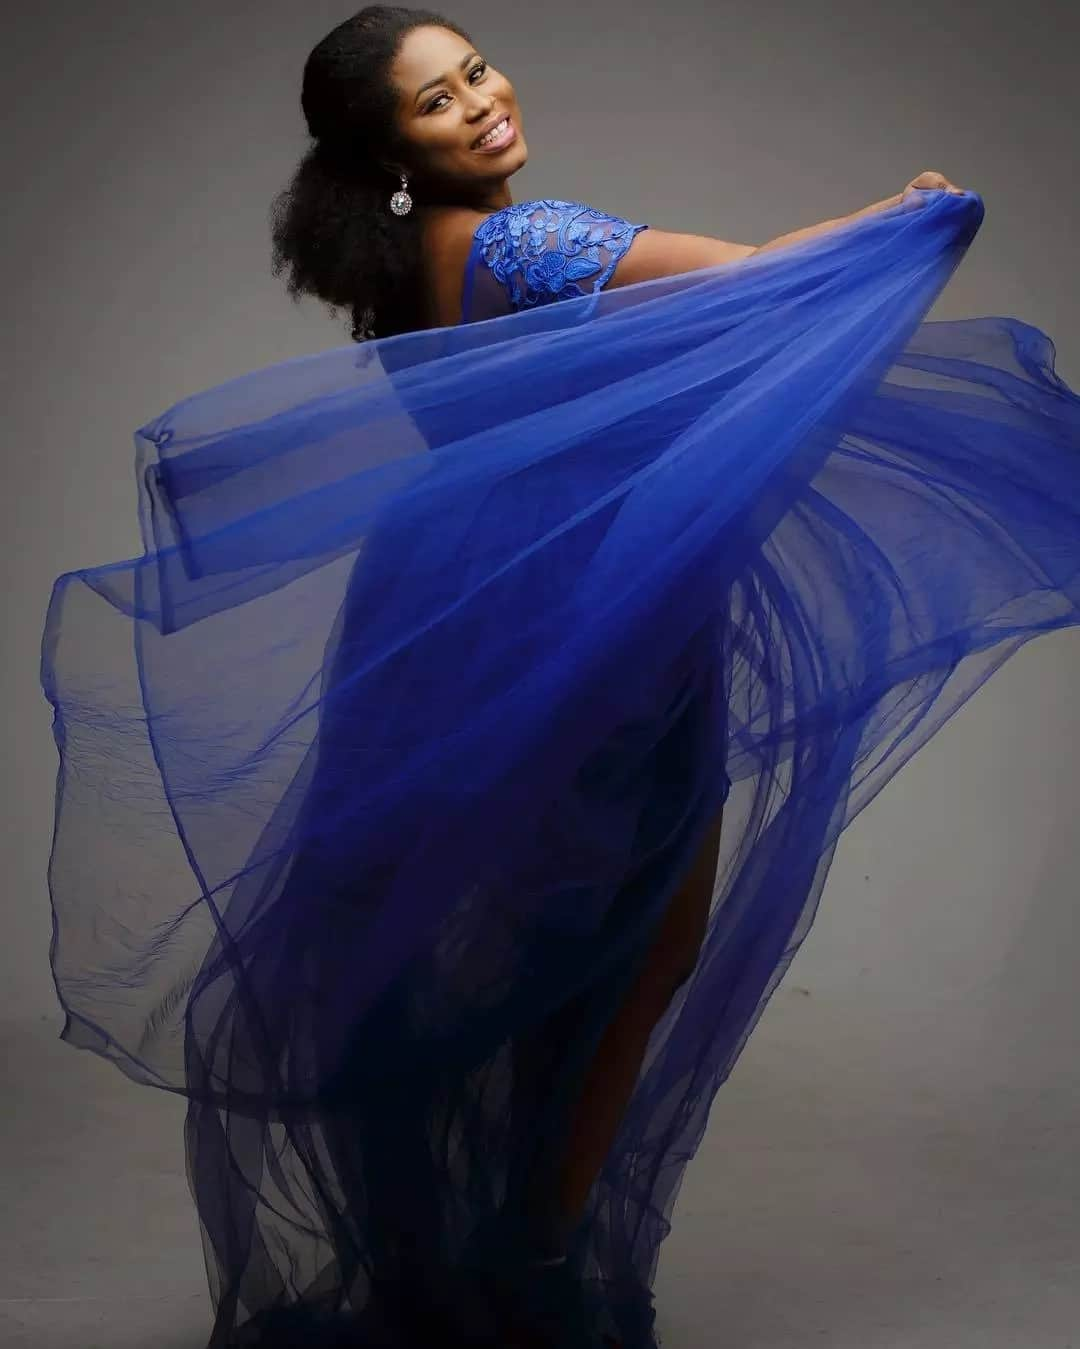 Christabel Ekeh's birthday suit photos for an advocacy prject